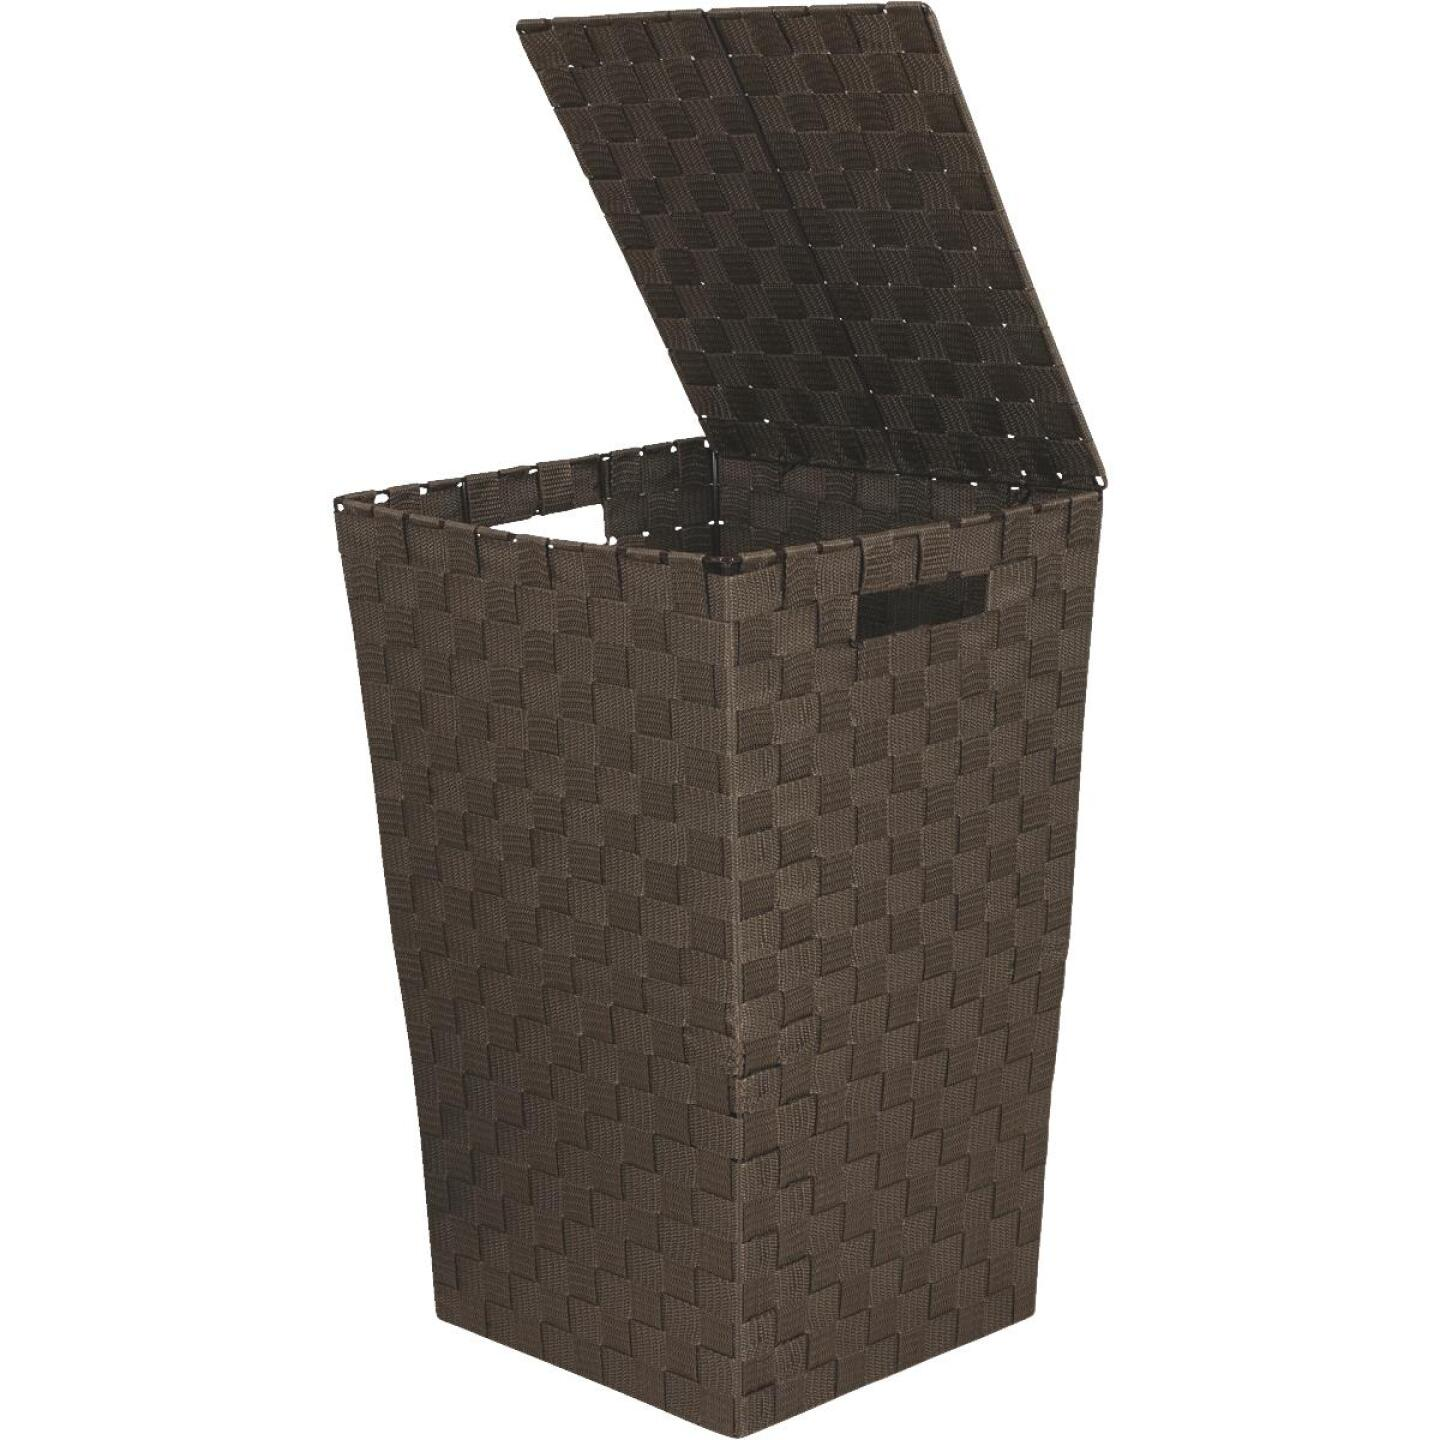 Home Impressions 13 In. x 20.5 In. H. Woven Laundry Hamper, Brown Image 1